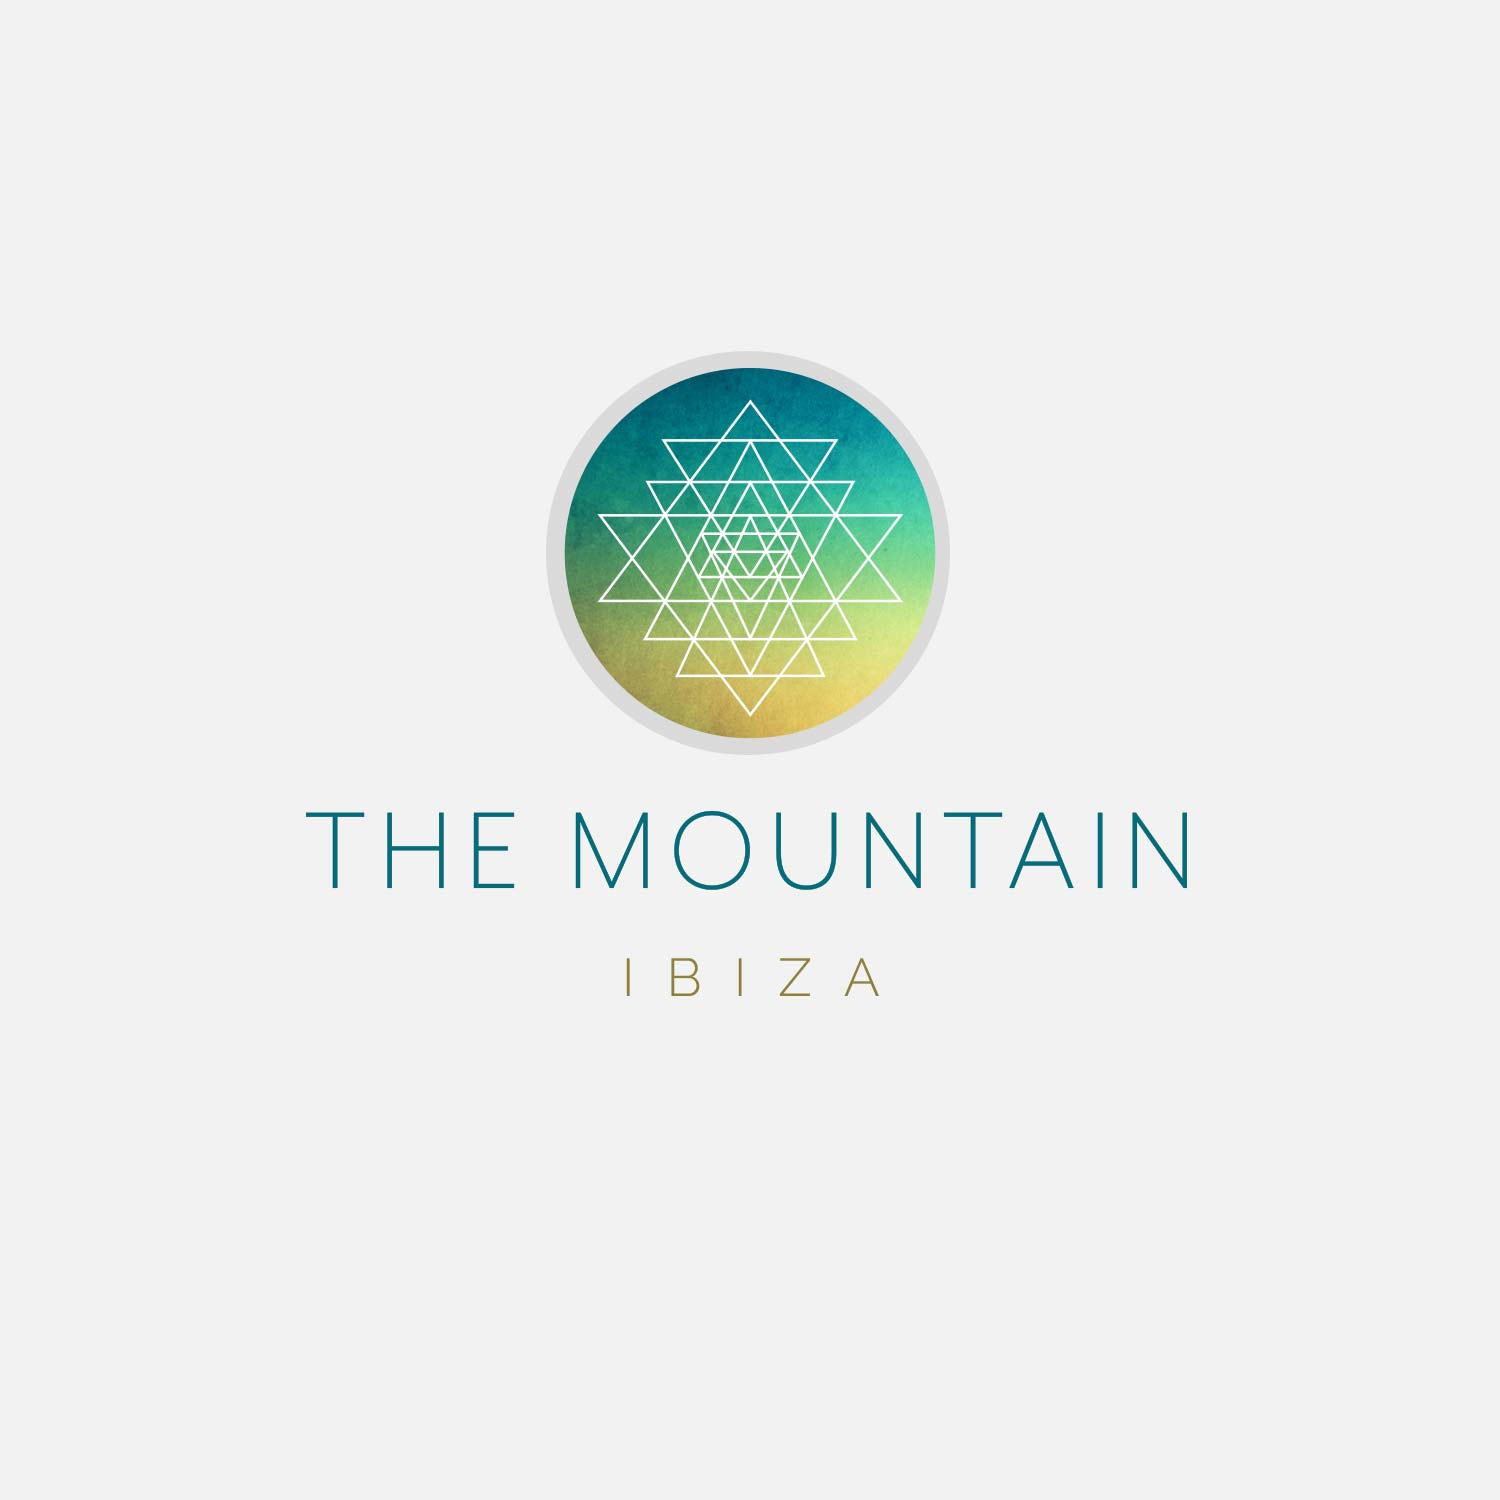 The Mountain Ibiza logo